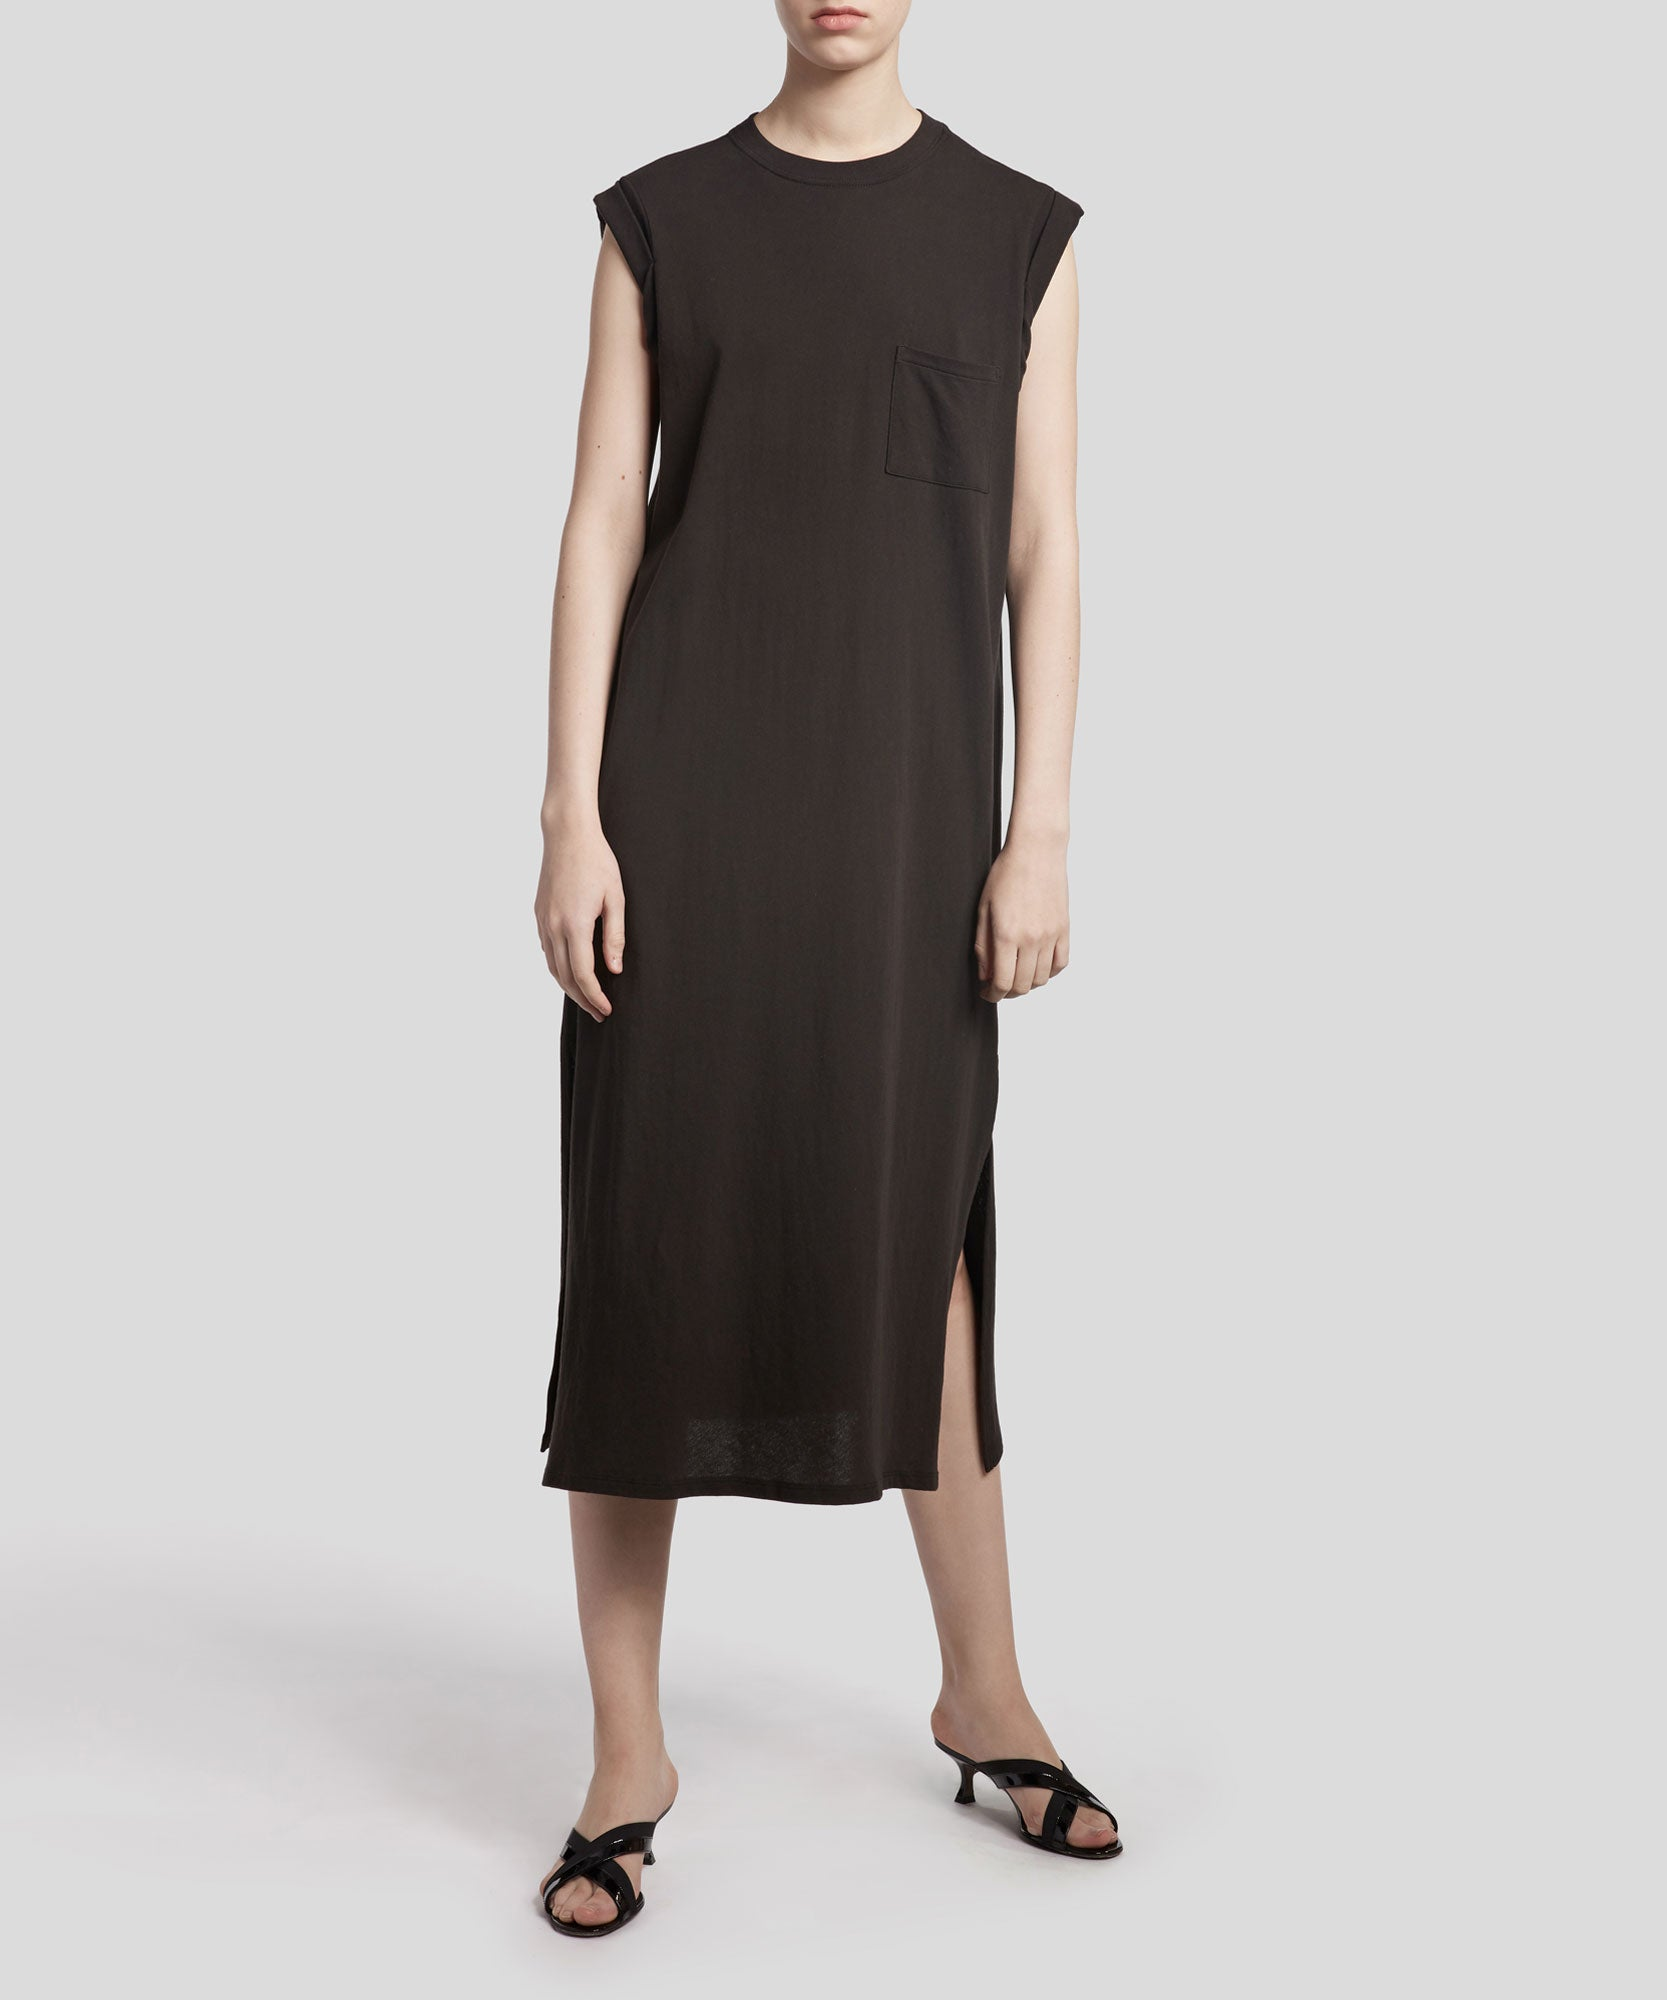 Black High Torsion Rolled Cuff Dress - Women's Sleeveless Dress by ATM Anthony Thomas Melillo